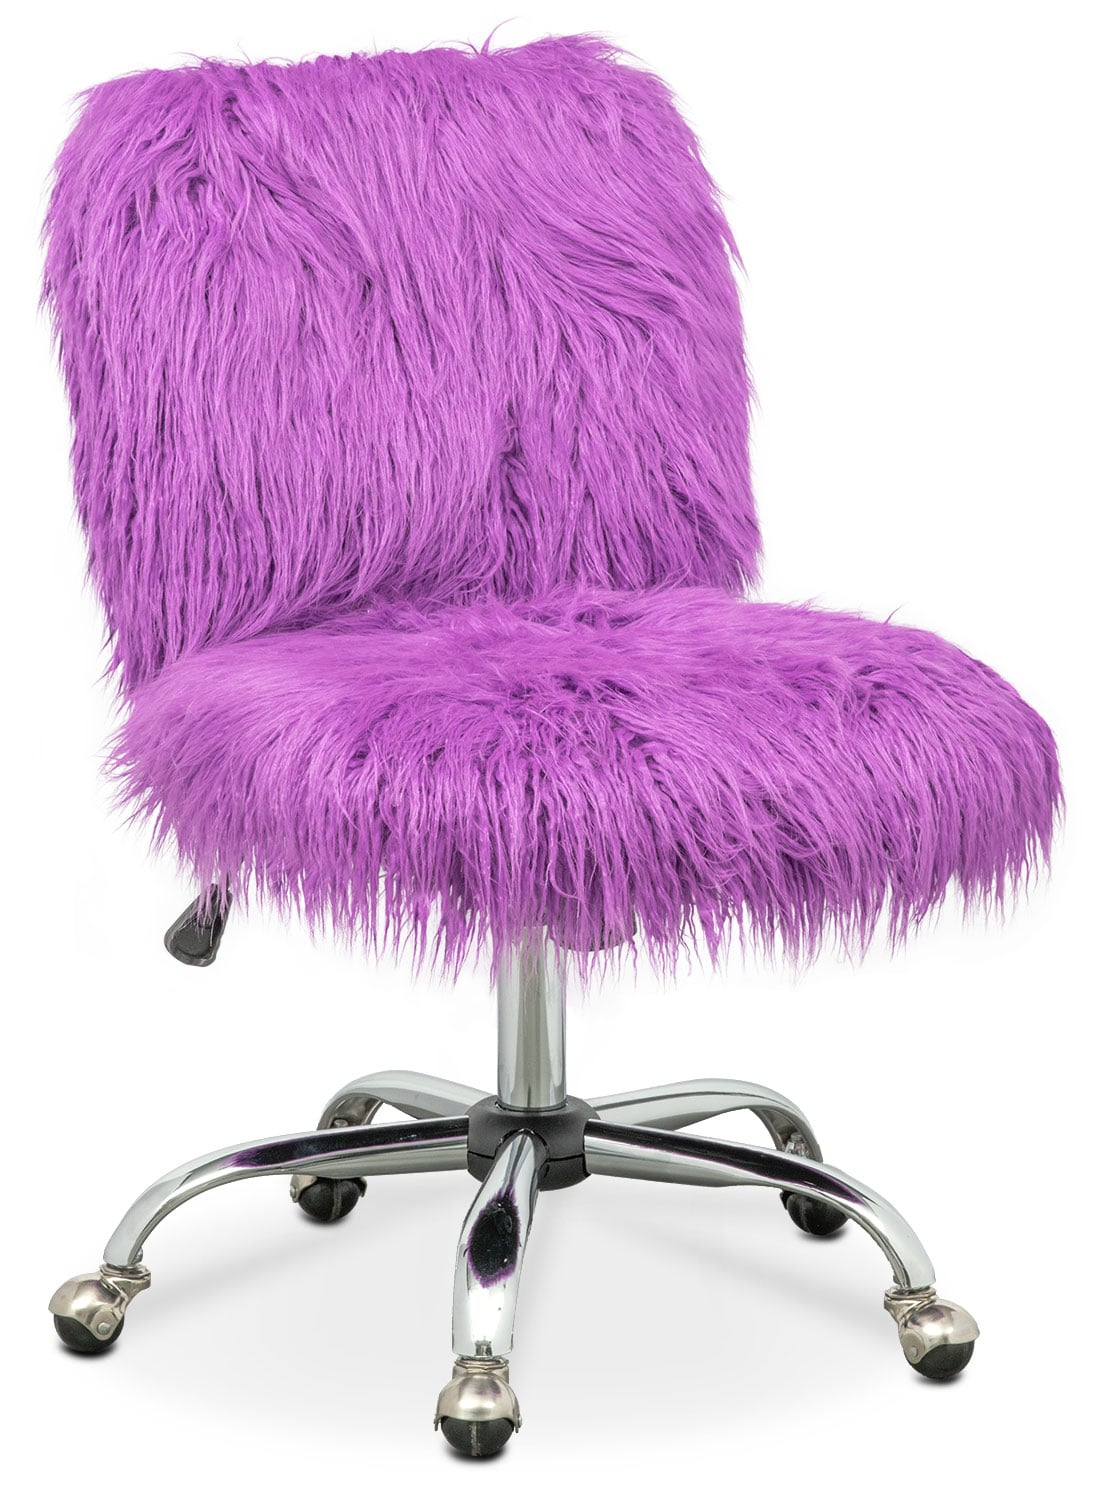 Frenzy Office Chair - Purple